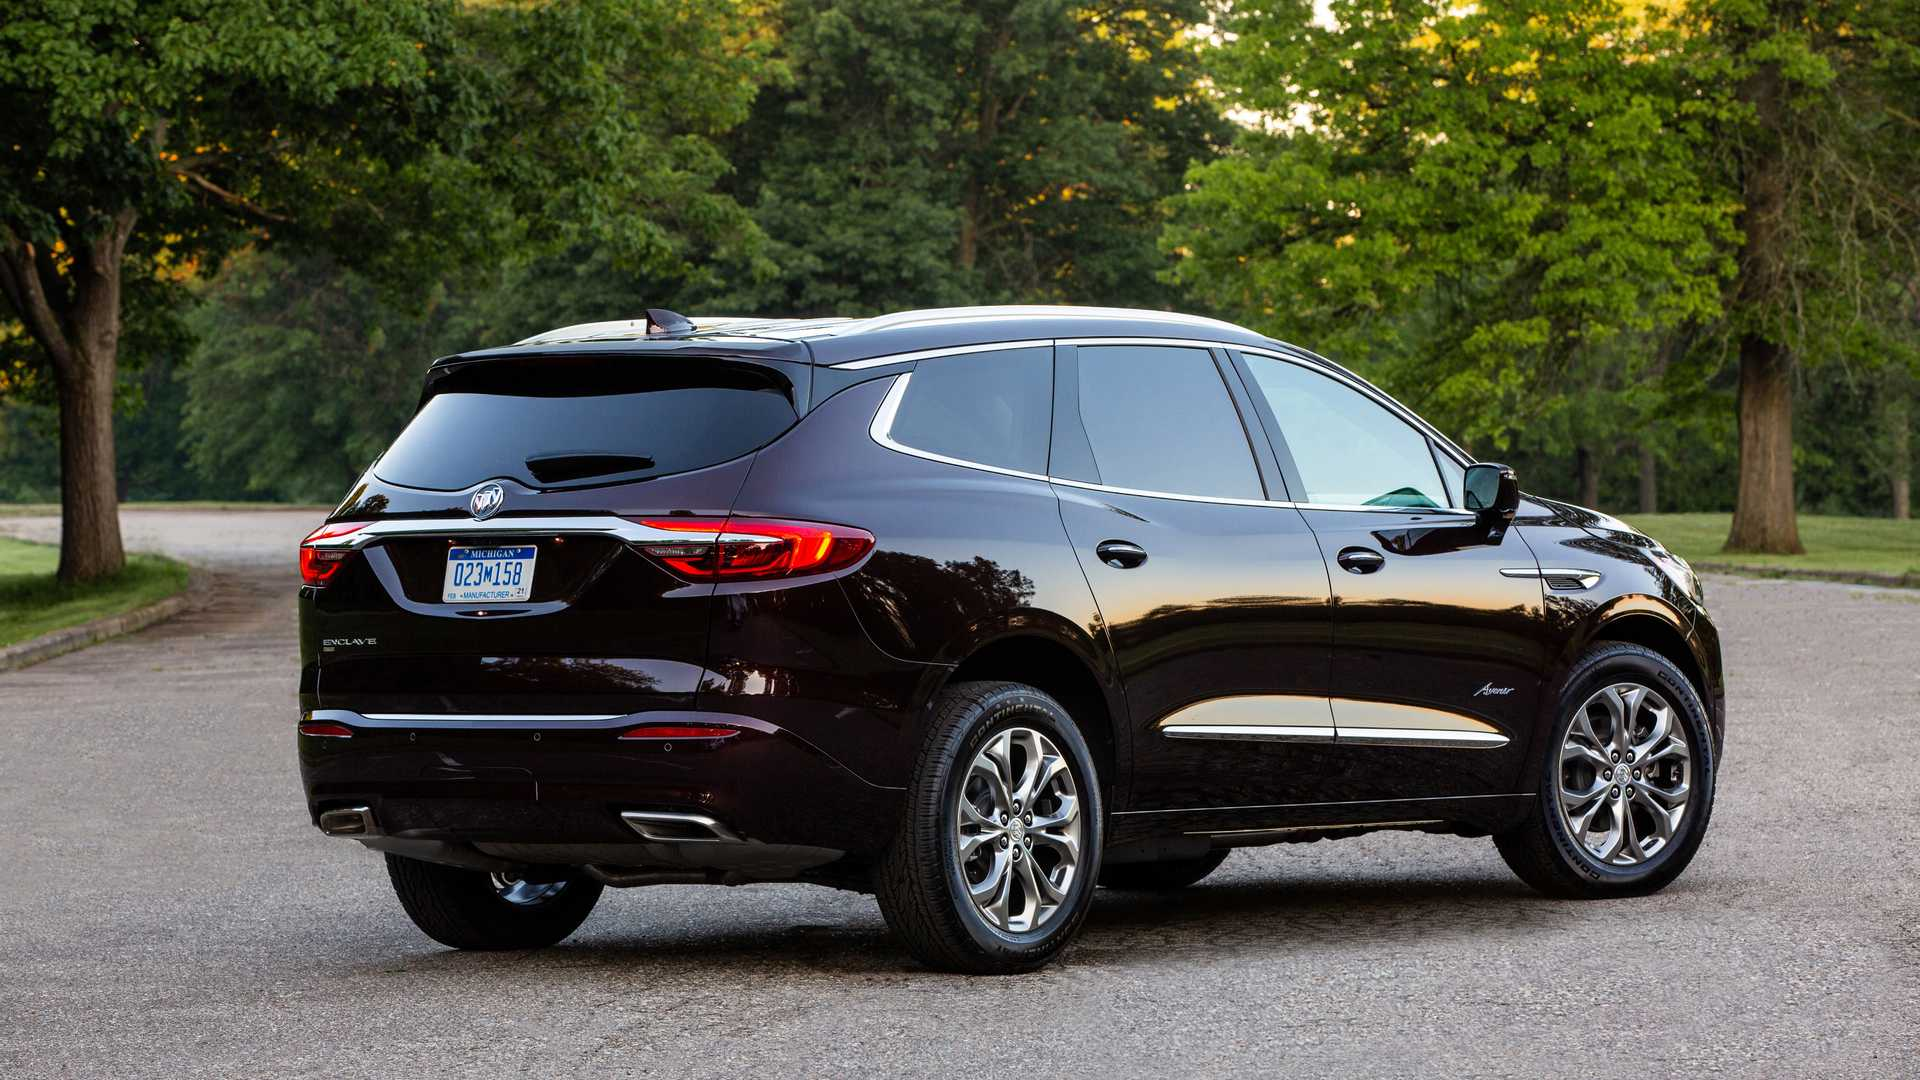 Buick Offering Crazy Deals On Its Entire Range Up To 7 700 Off